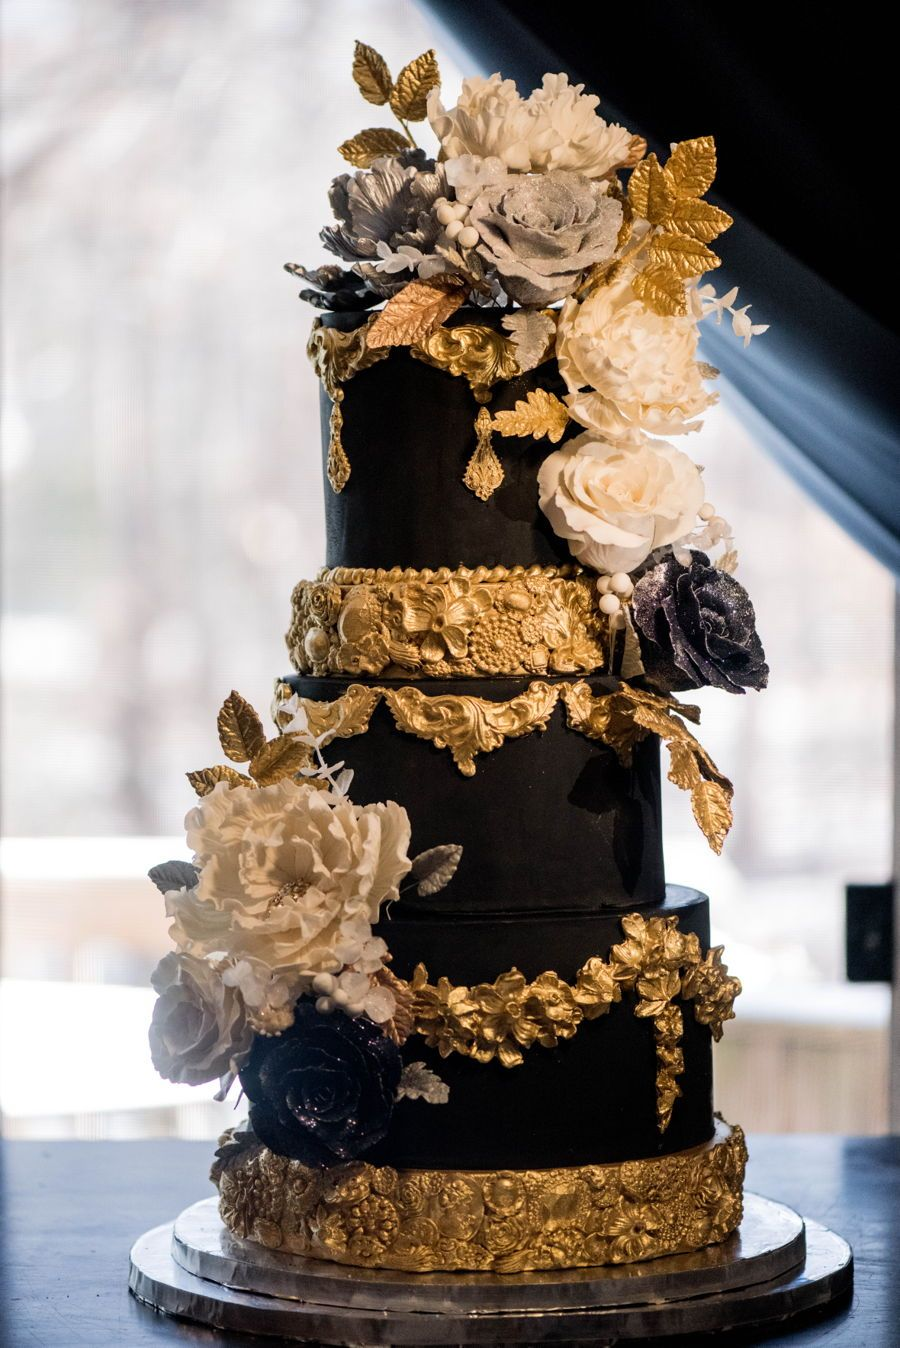 Black Is Back A 5 Tier Birthday Cake I Made For Luxury Washington DC Event This Weekend The Features Elegant Bas Relief Tiers